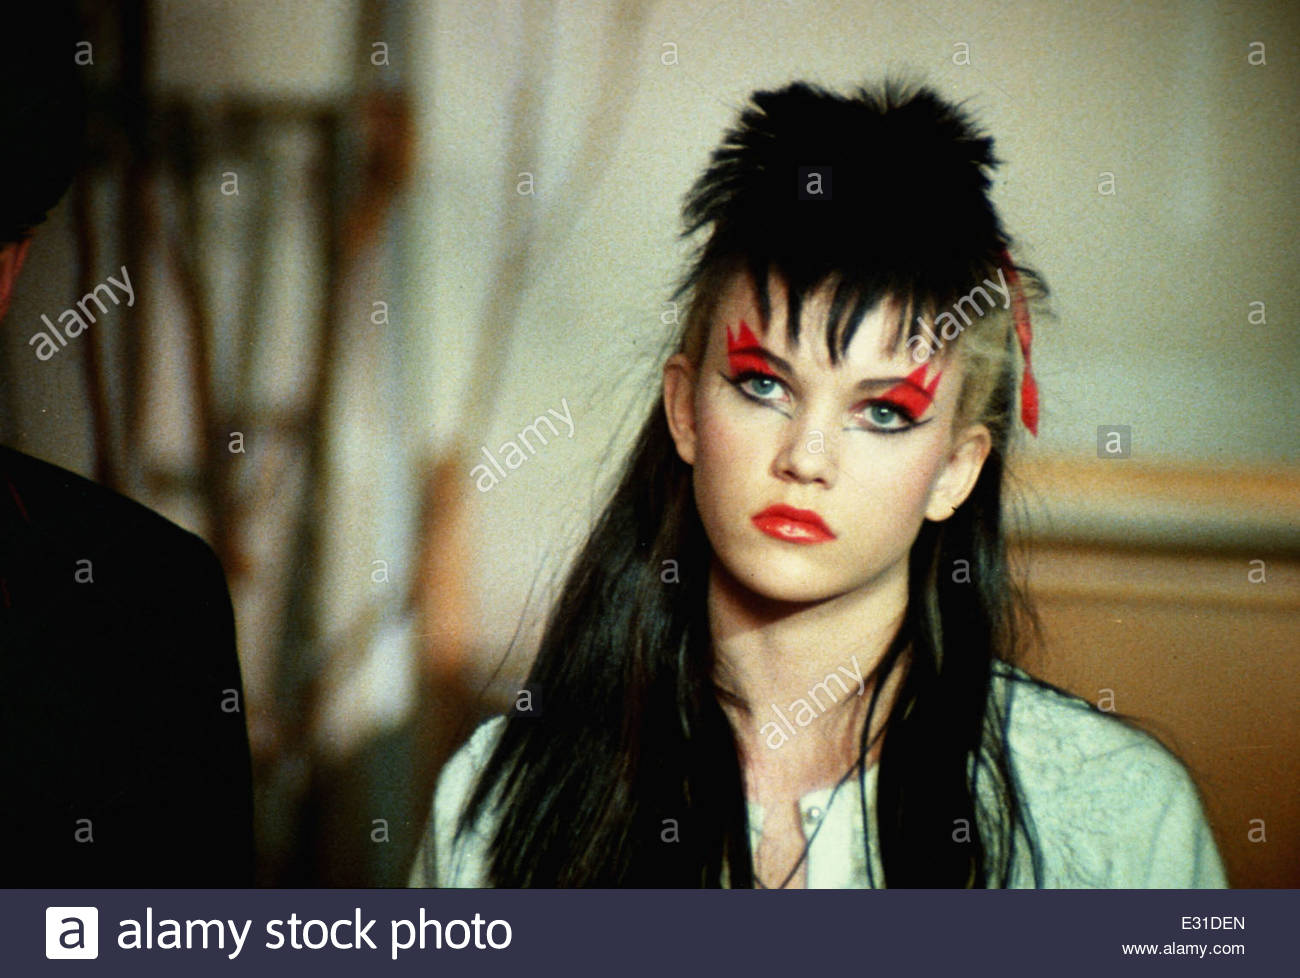 Still from the 1982 film 'Ladies and Gentlemen, The Fabulous Stains'. Courtesy Granamour Weems Collection. - Stock Image